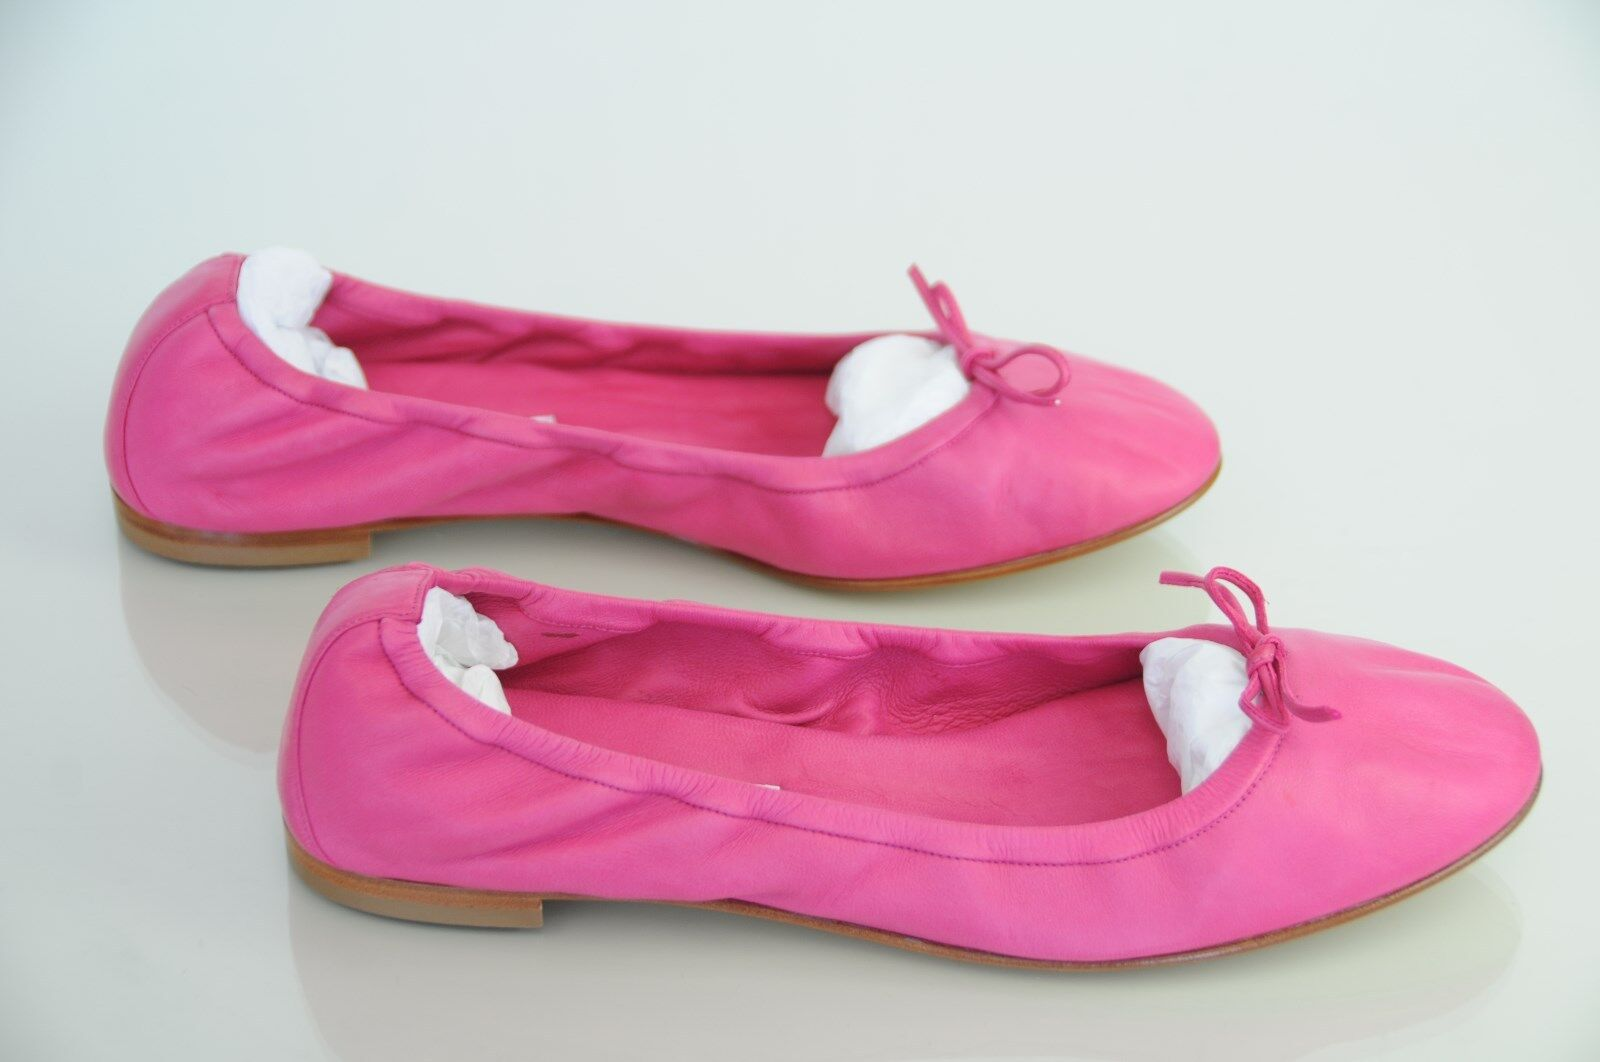 NEW MANOLO BLAHNIK TOBALY Hot PINK Bow Stretch Ballerina Flats SHOES 40.5